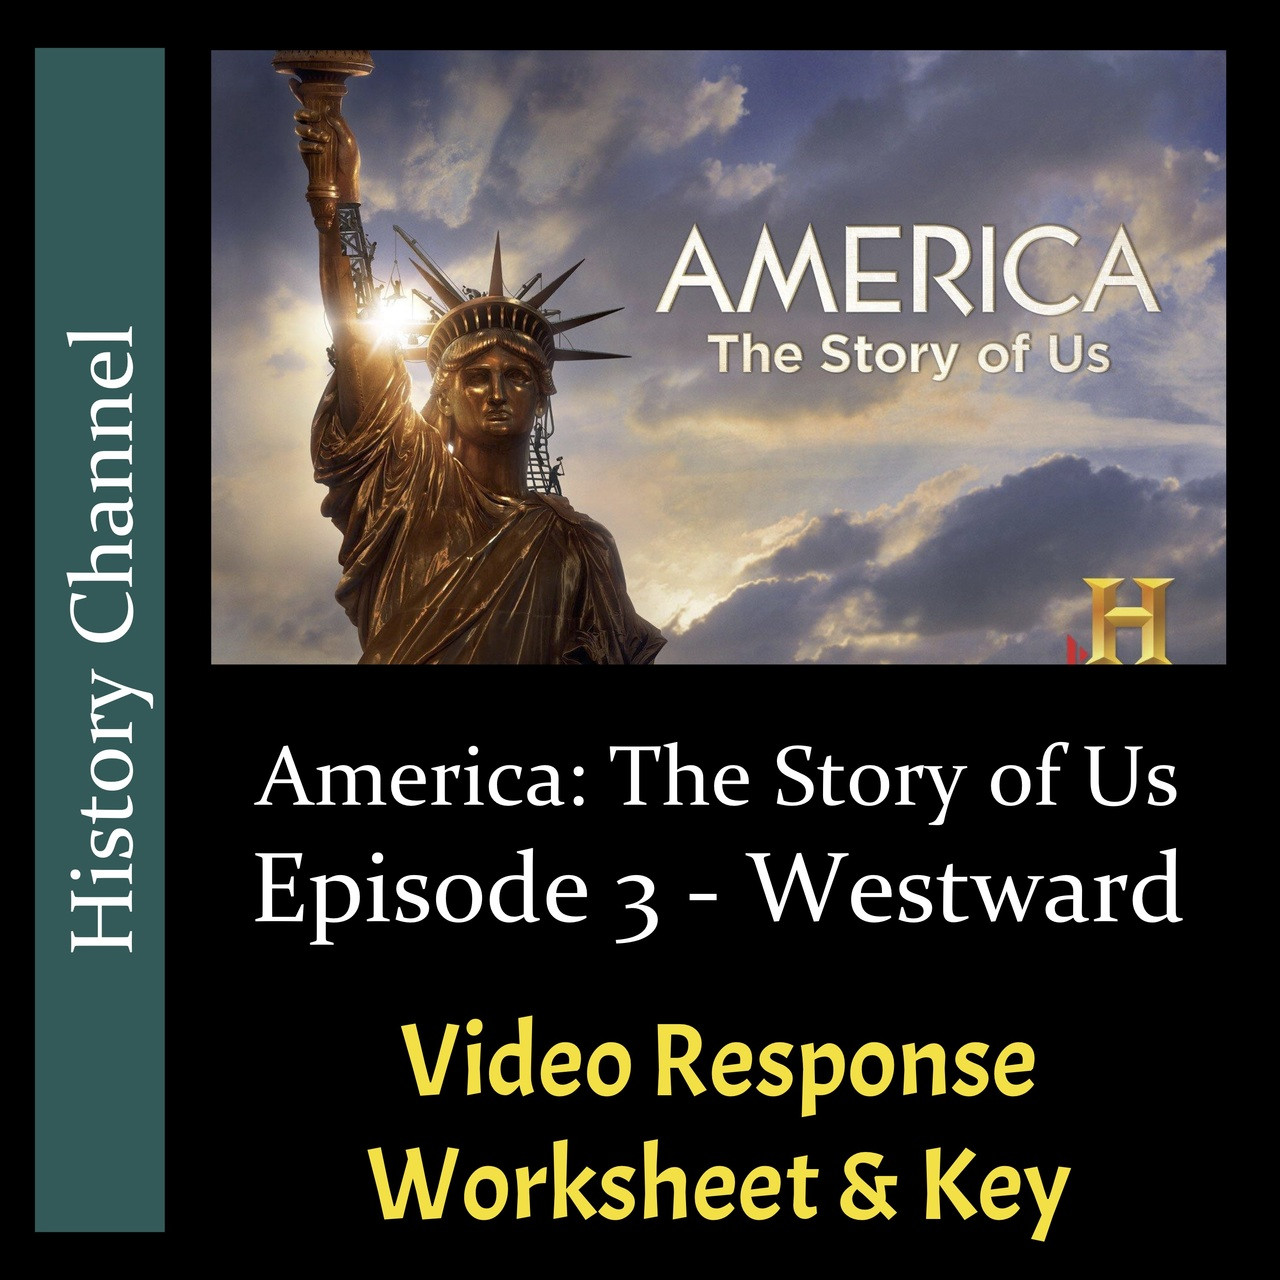 America The Story of Us - Episode 3: Westward - Video Response ...